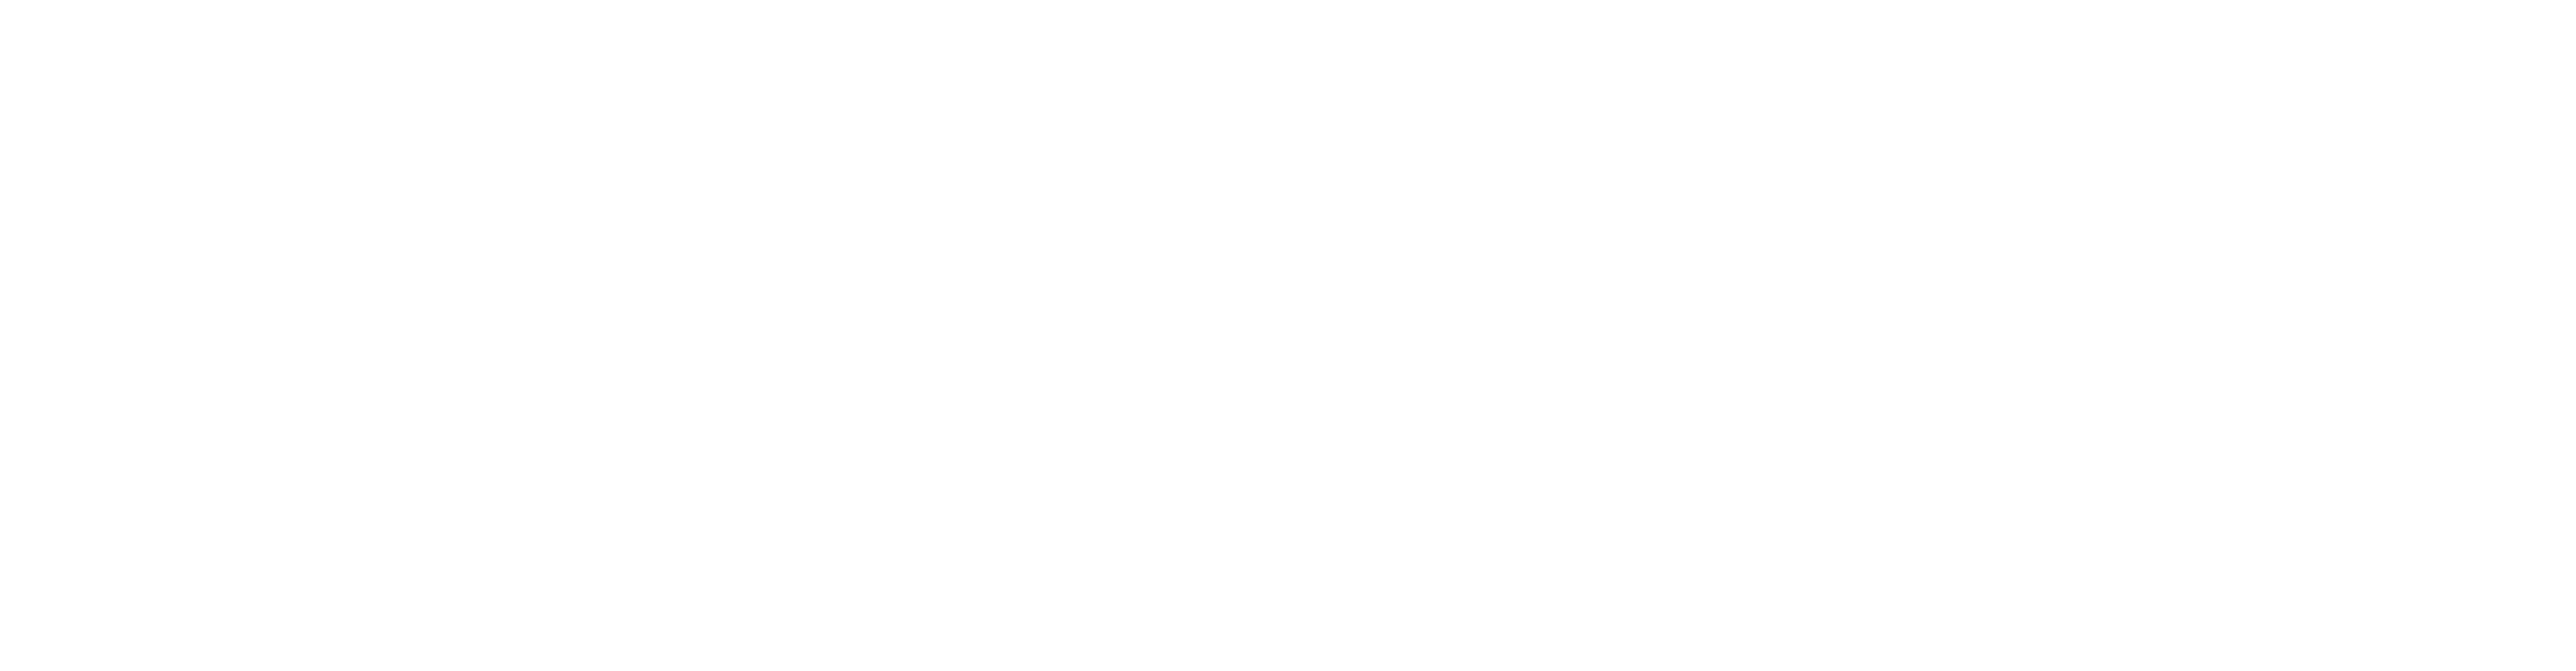 https://www.graystoneleadership.com/wp-content/uploads/2020/12/231872_GraystoneLogo_withtag_WHITE.png